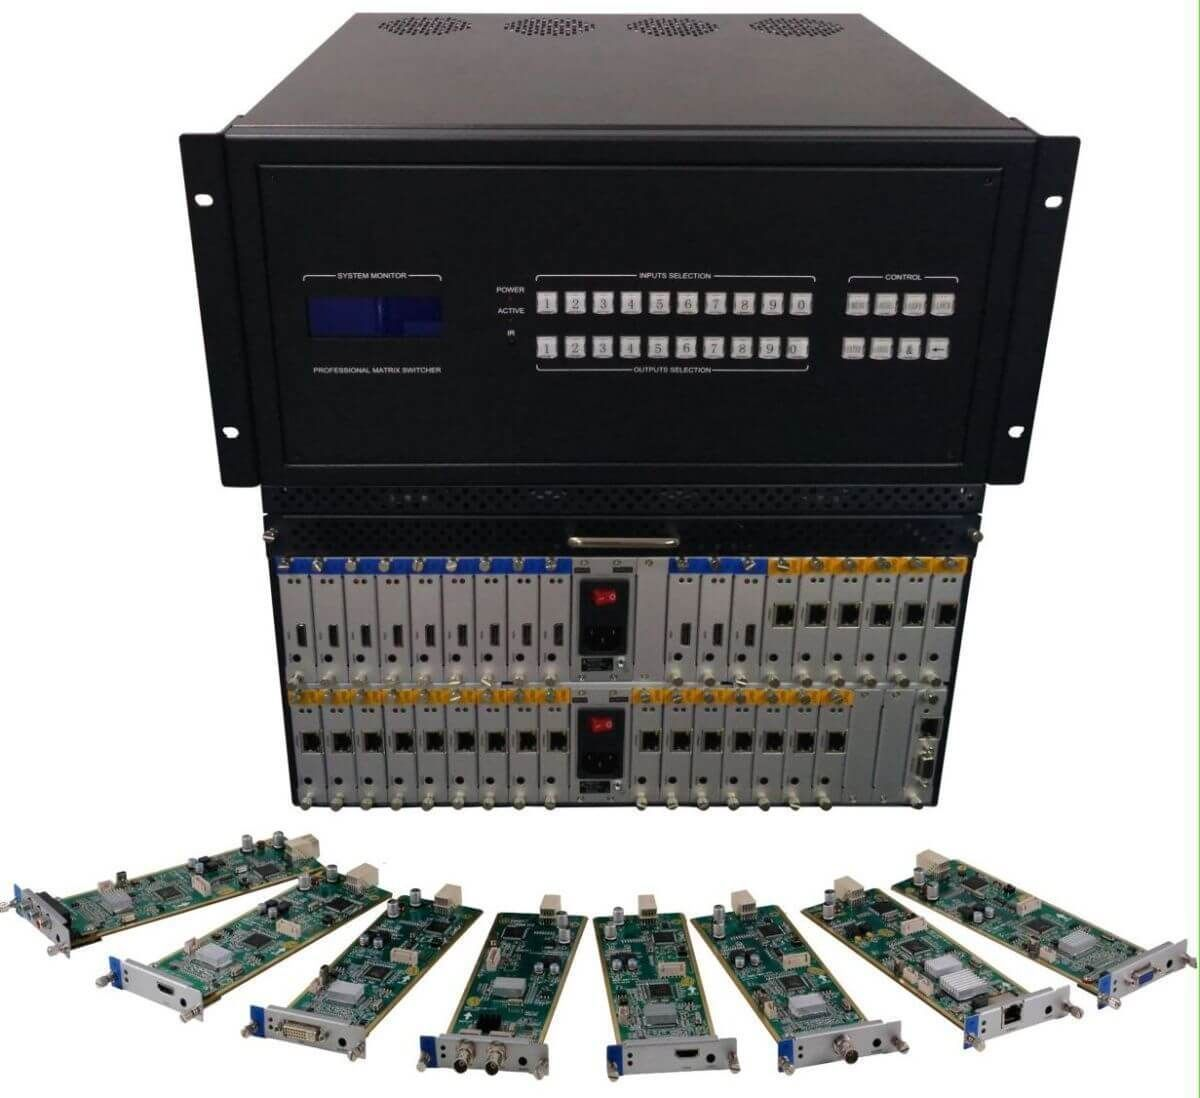 32x36 HDMI Matrix Switcher w/Video Wall Processor, 100ms Switching, Scaling & Separate Audio